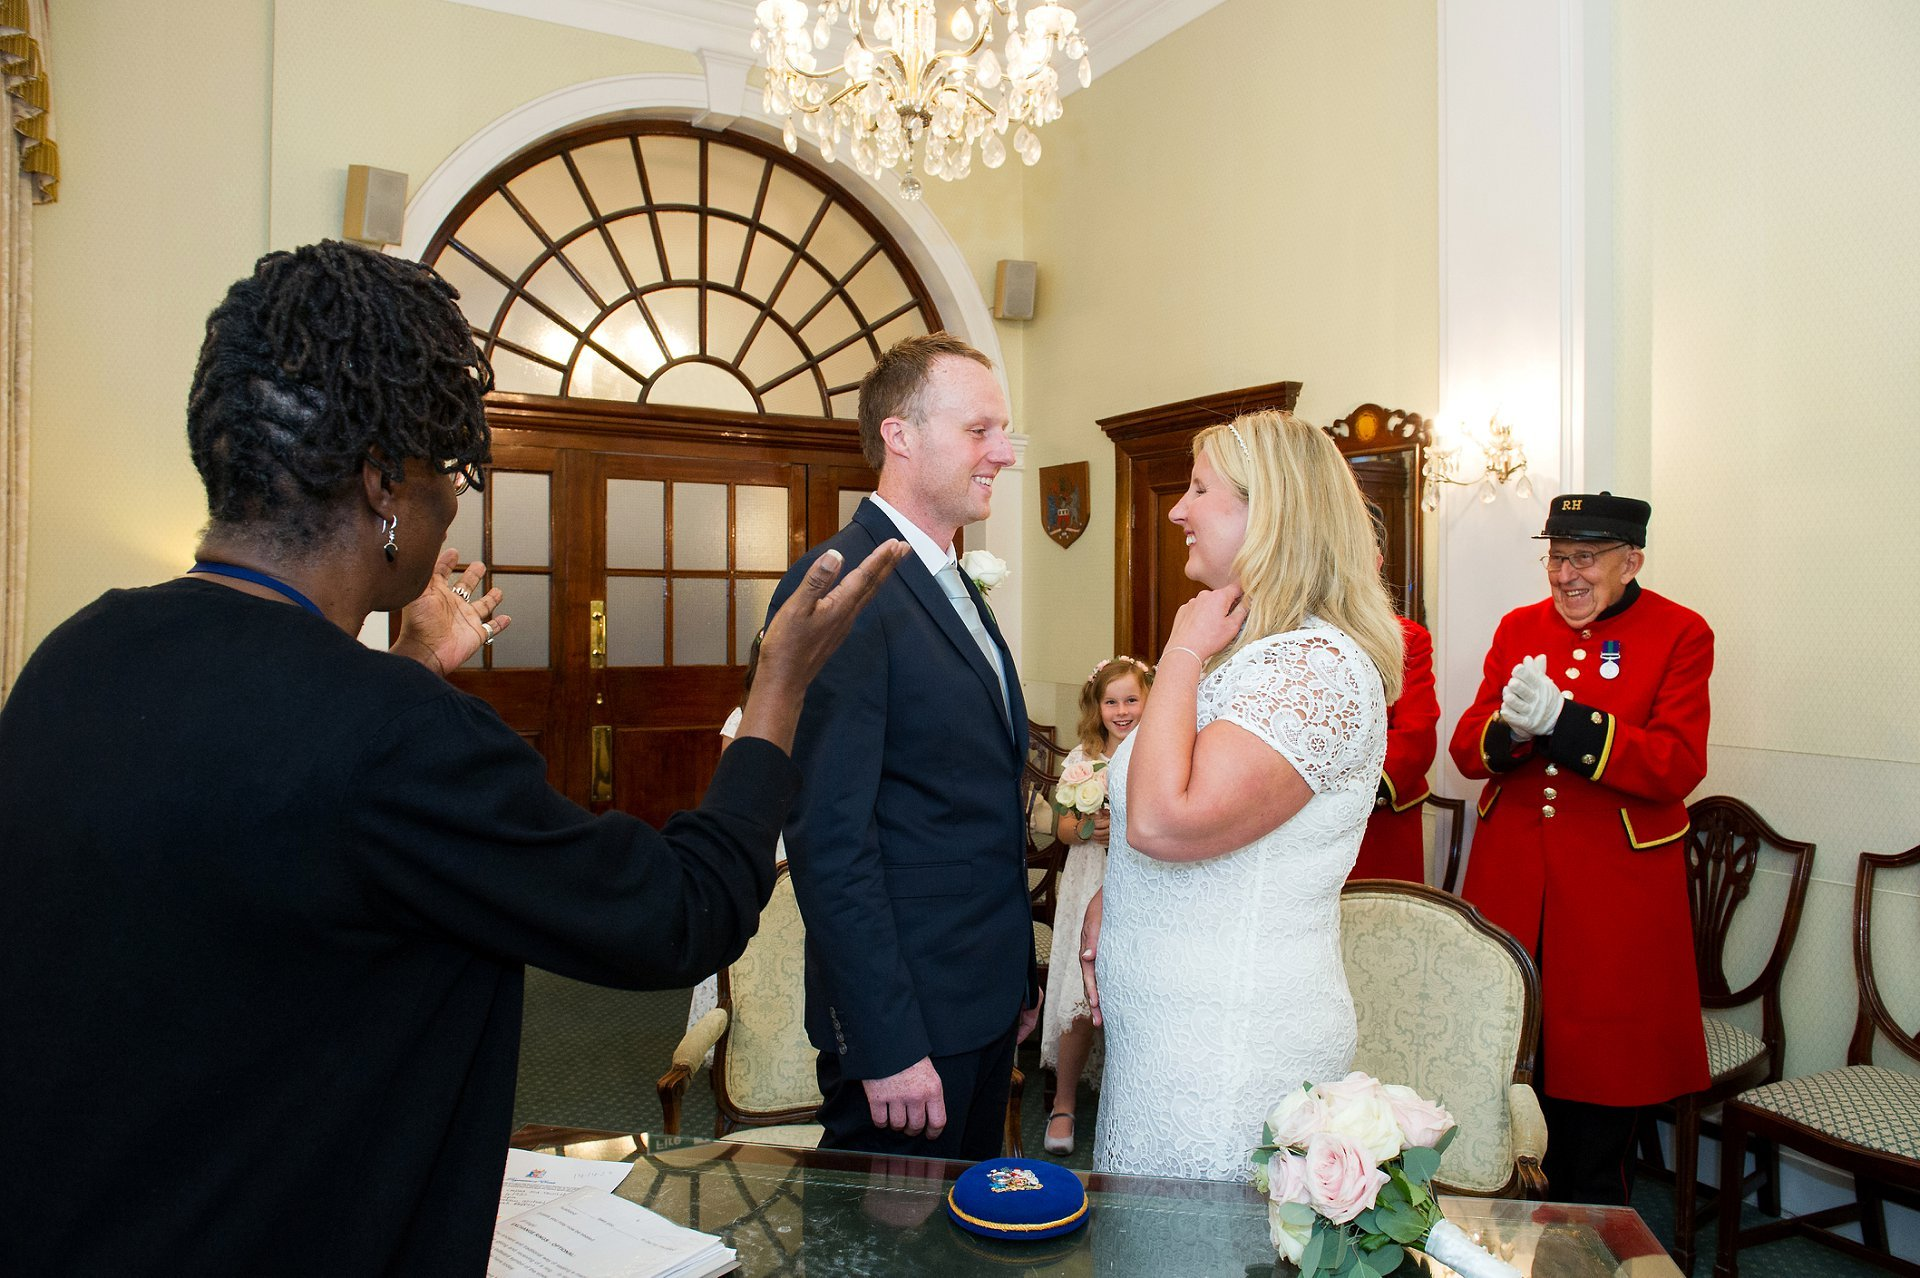 The Registrar congratulates the couple during this Chelsea Registry Office wedding